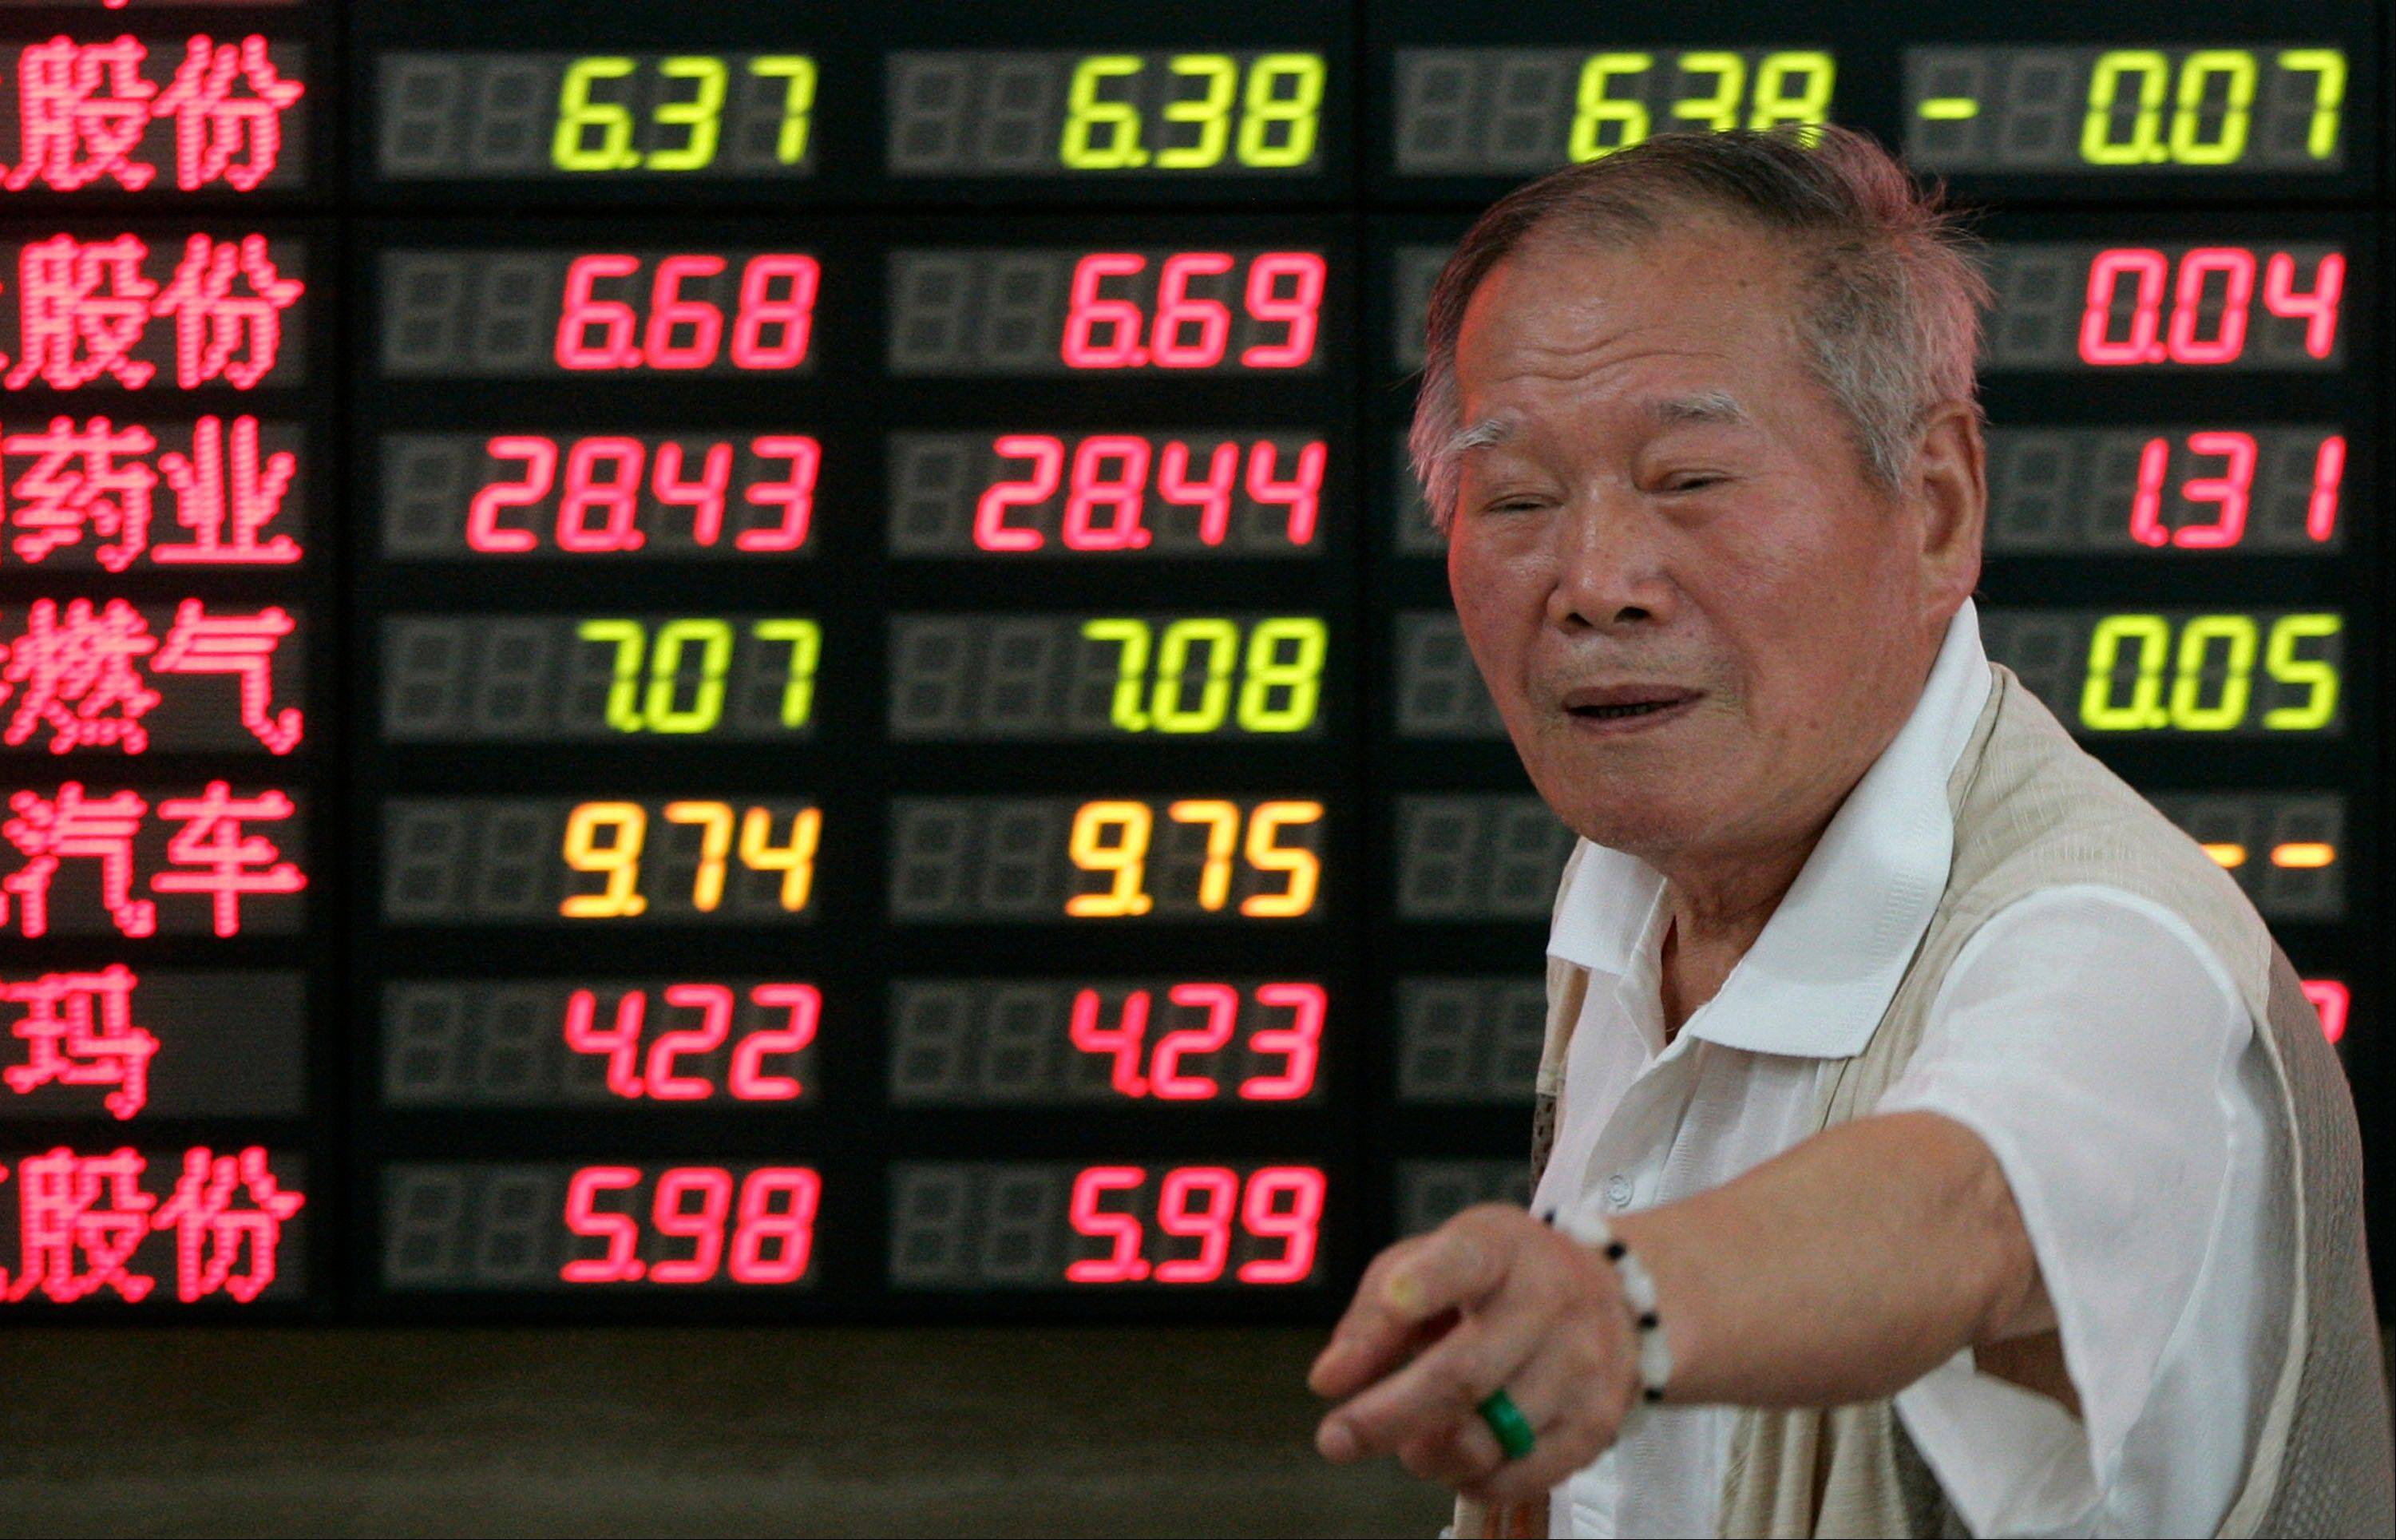 An investor gestures in front of the stock price monitor at a private securities company Tuesday July 24, 2012 in Shanghai, China.